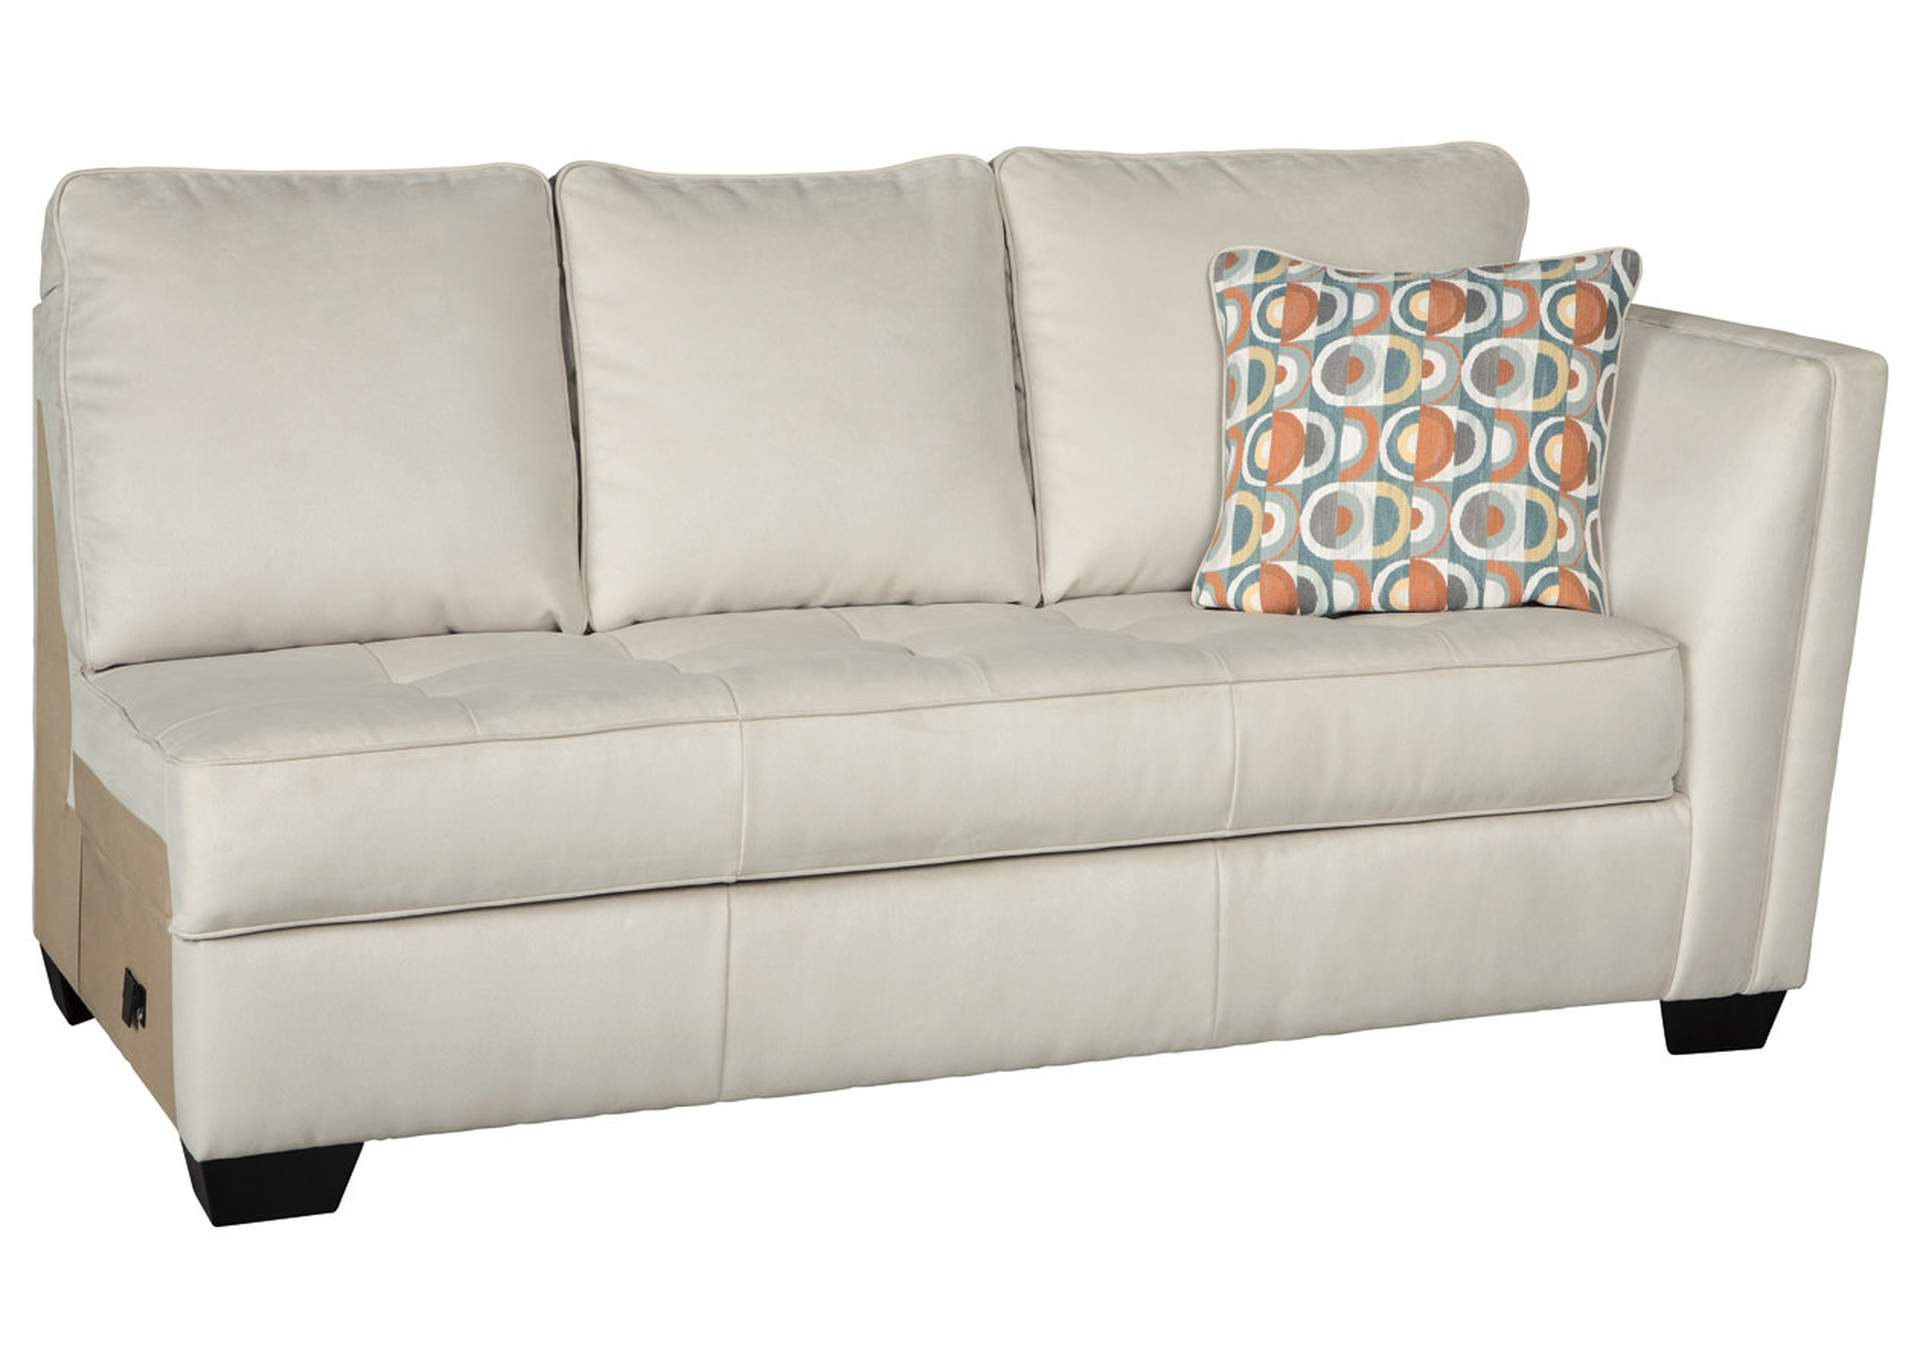 Filone Left-Arm Facing Sofa,Signature Design By Ashley